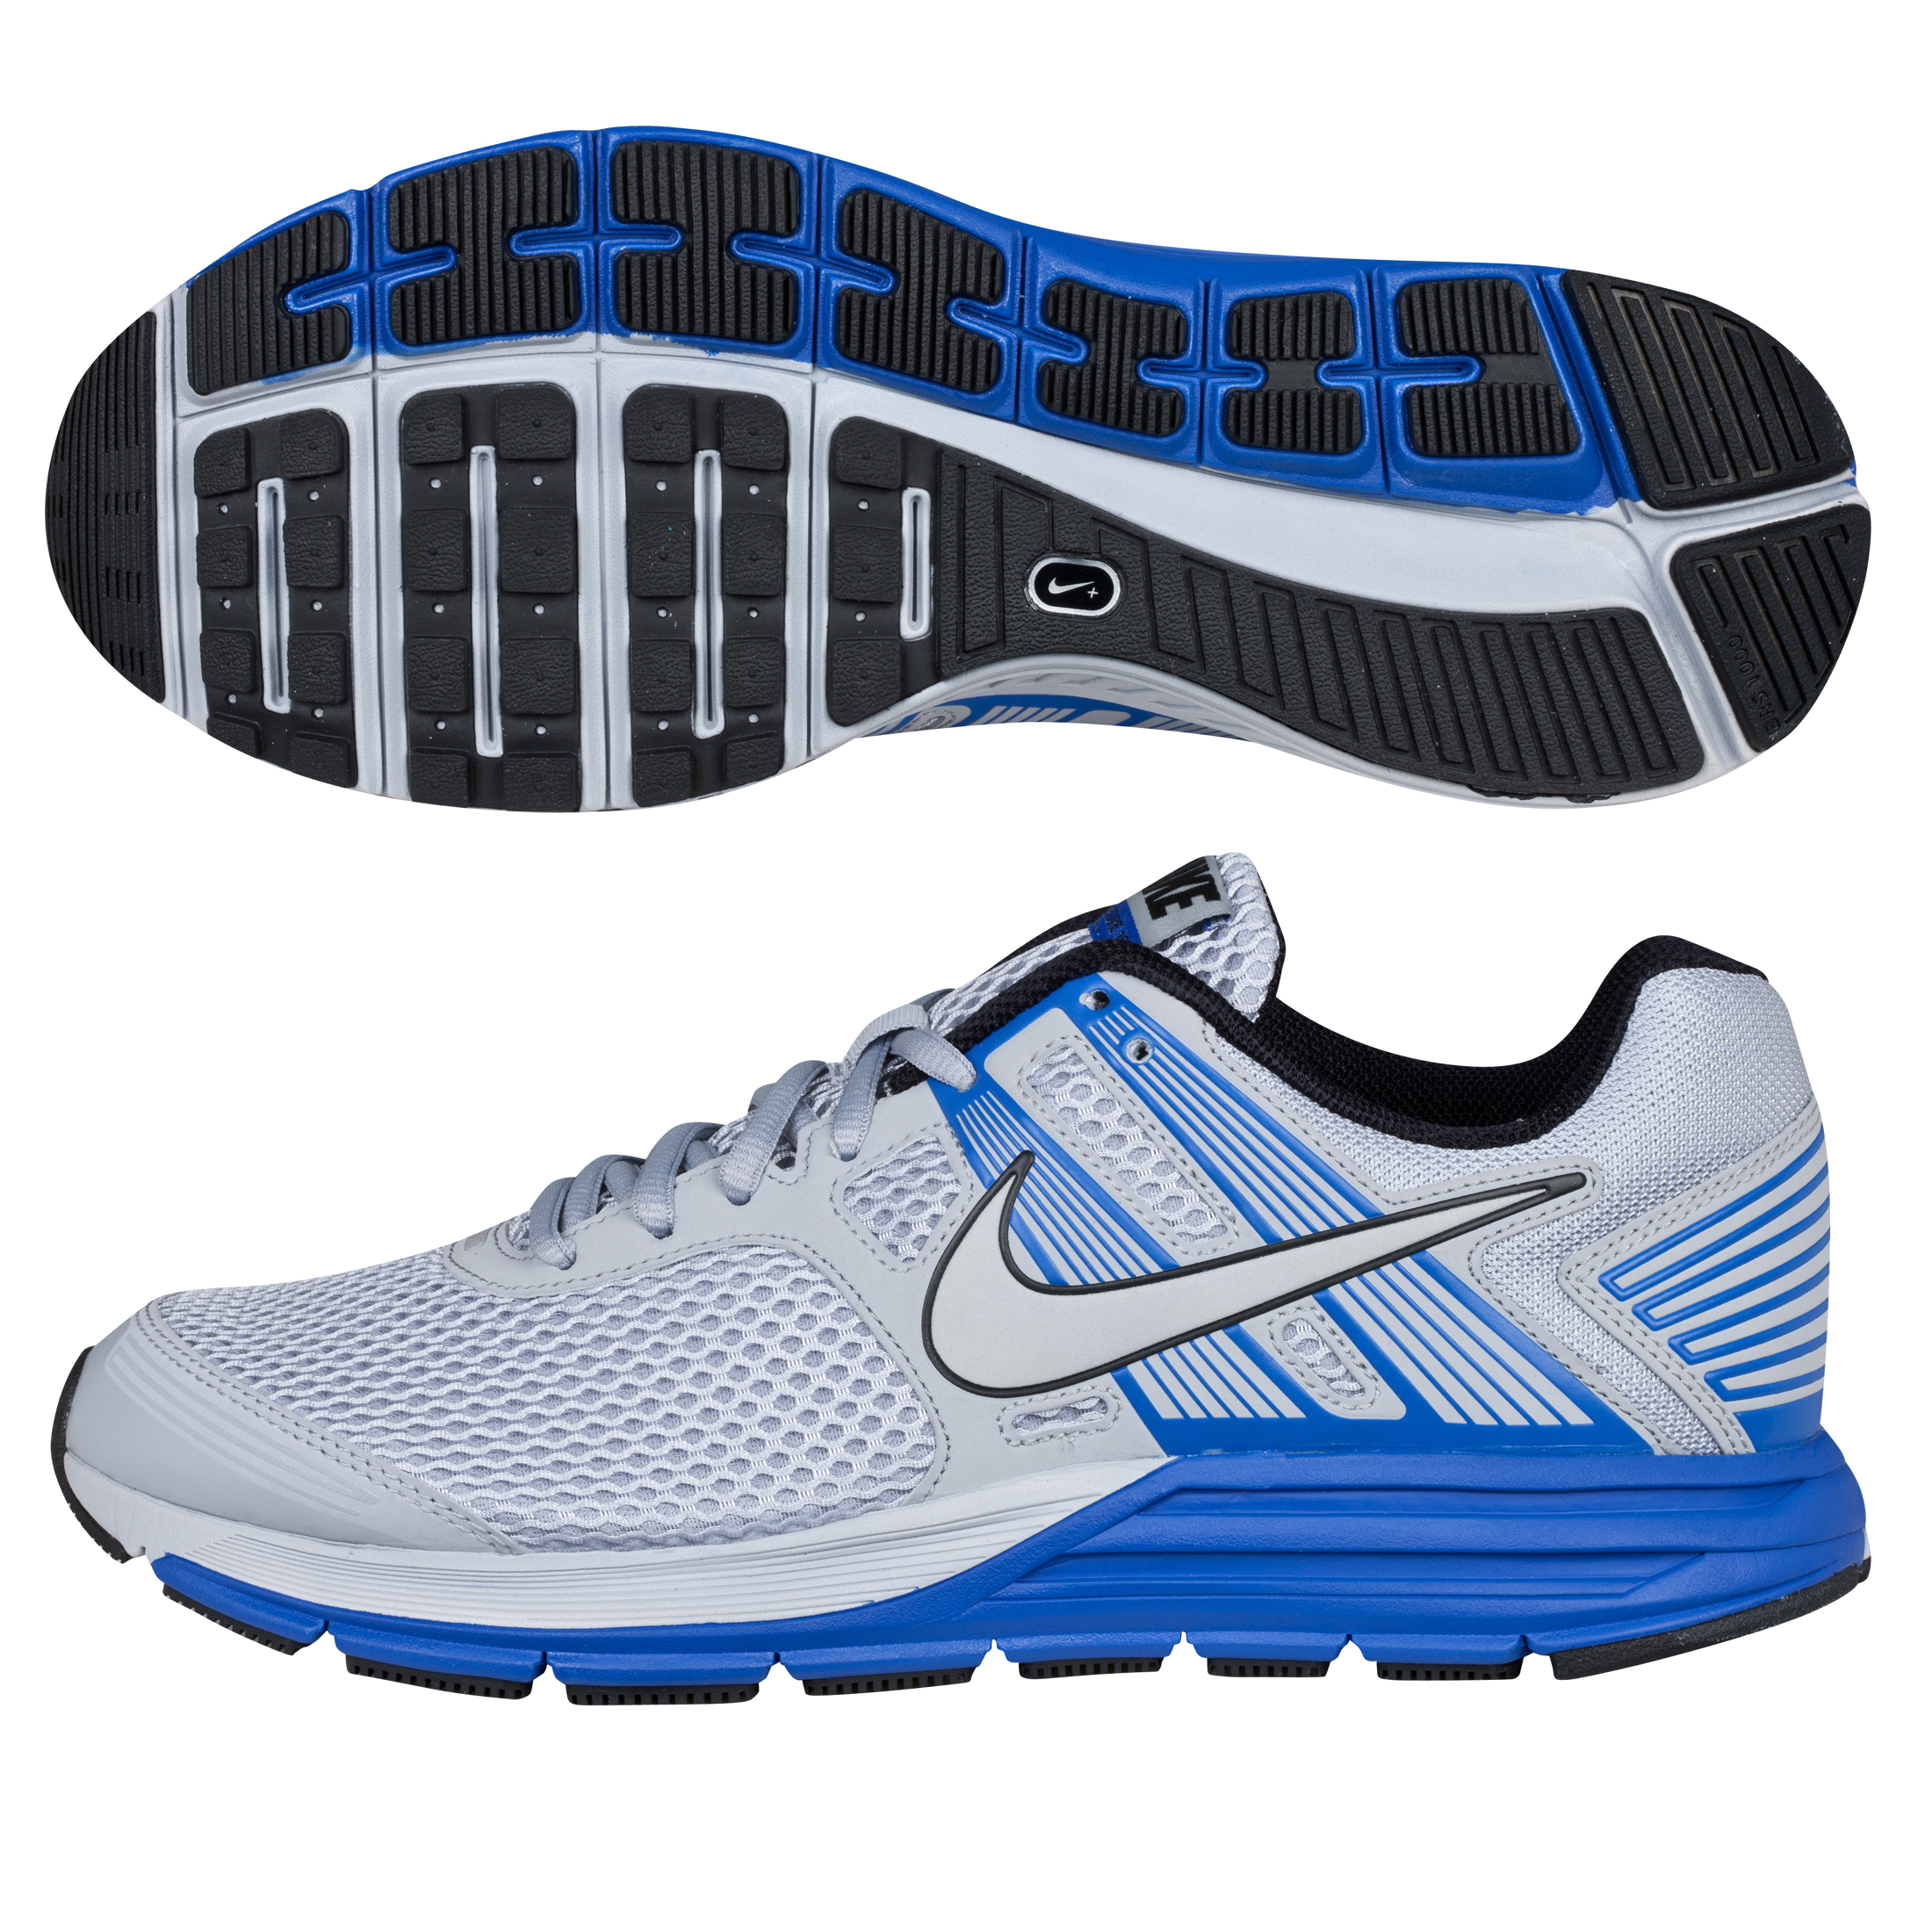 Nike Zoom Structure+ Stability Trainer - Wolf Grey/Silver